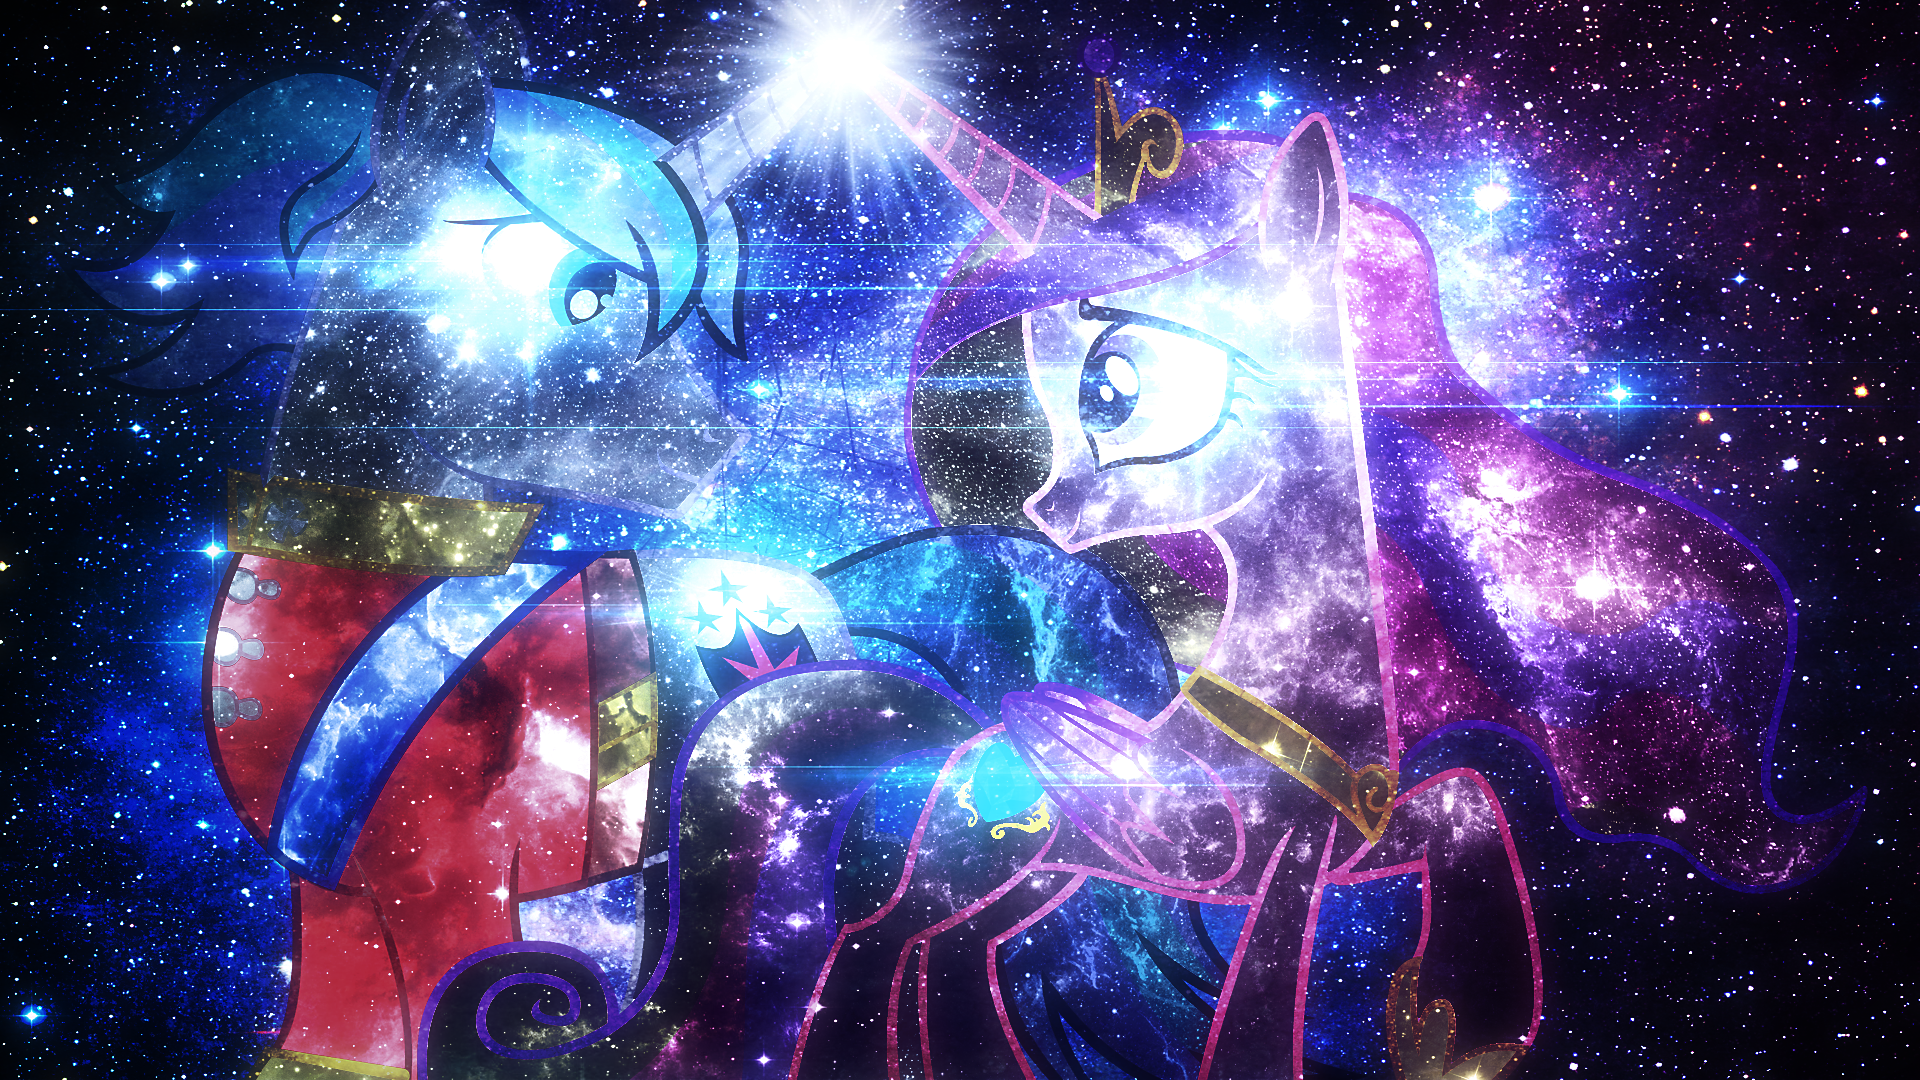 Galactic Love - Wallpaper by anitech and Tzolkine